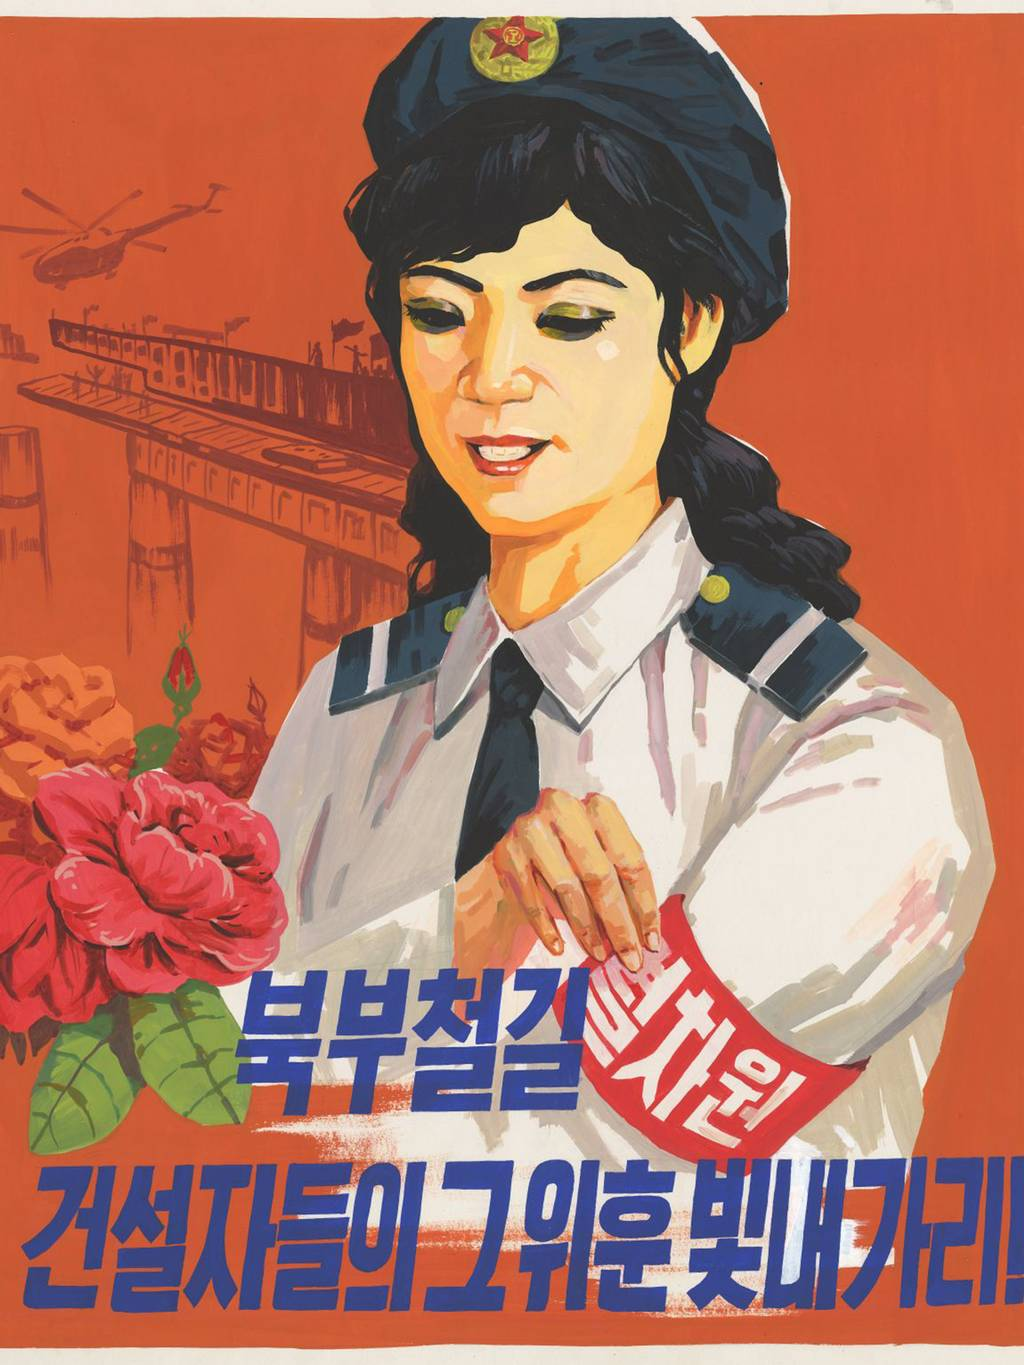 Rare North Korea Propoganda Posters Go On Display For First Time ZNL7vlXyhnk poster 10.jpg